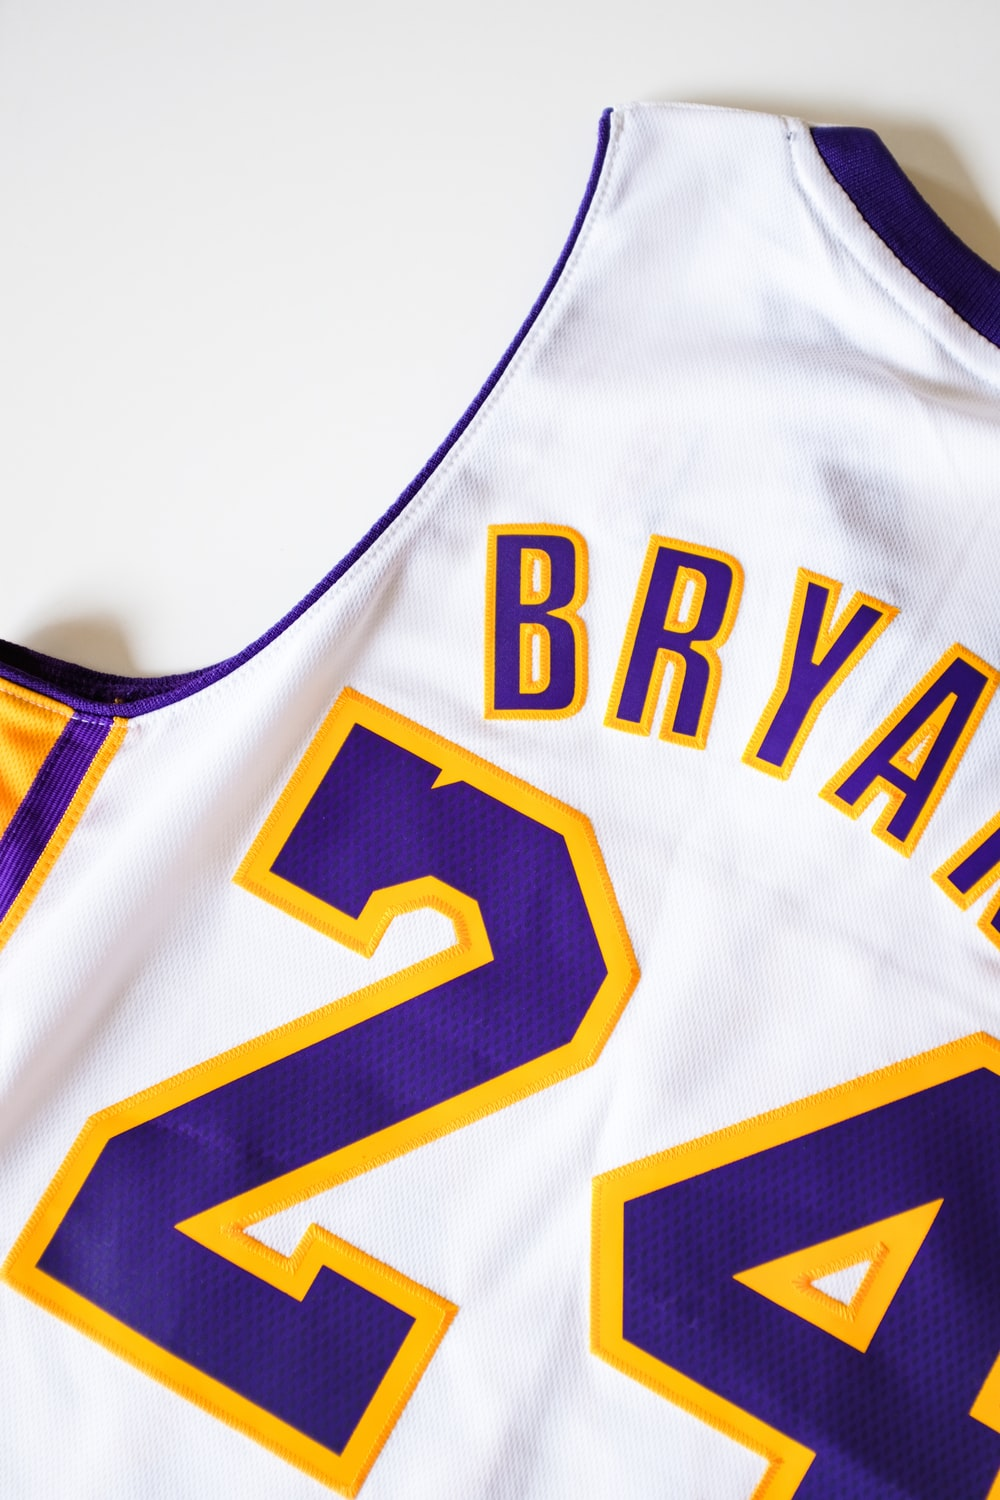 Kobe Bryant, Lakers NBA jersey #24